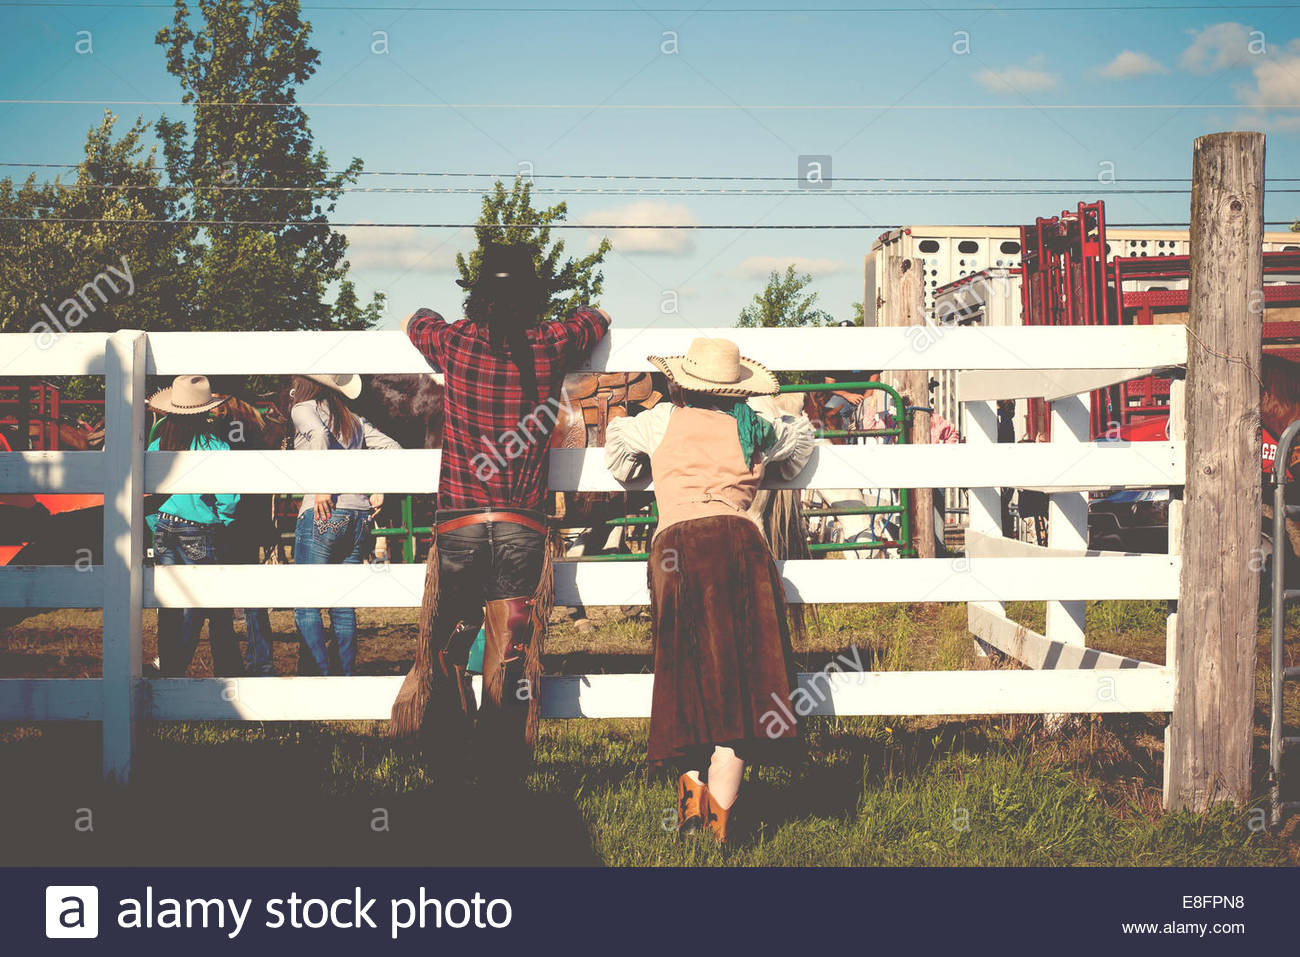 USA, Connecticut, Rear view of couple at rodeo leaning on cattle fence Stock Photo